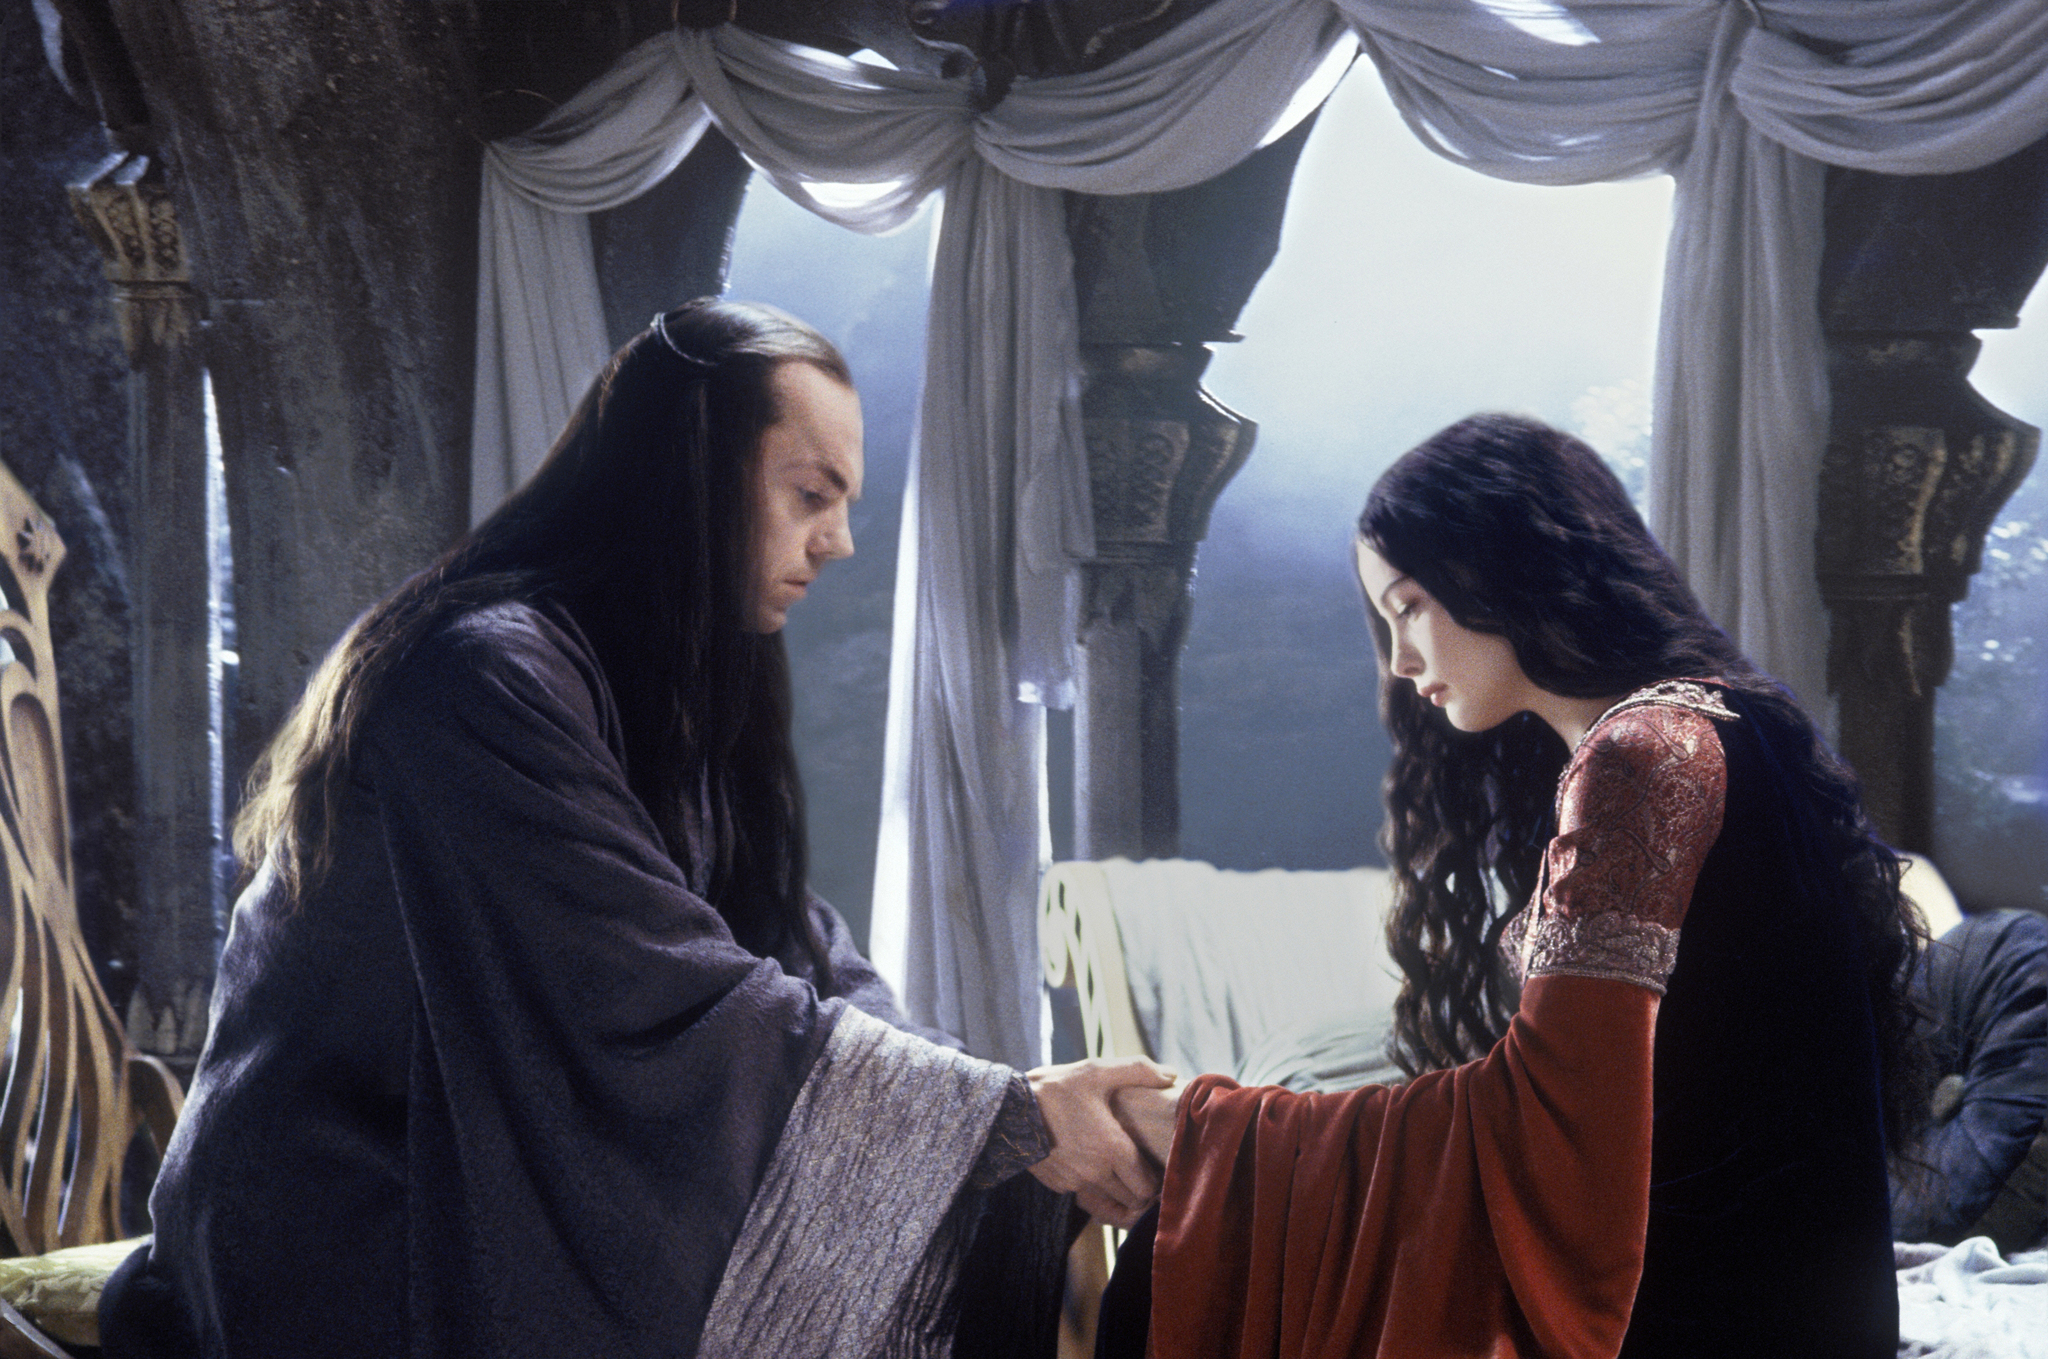 Liv Tyler and Hugo Weaving in The Lord of the Rings: The Return of the King (2003)